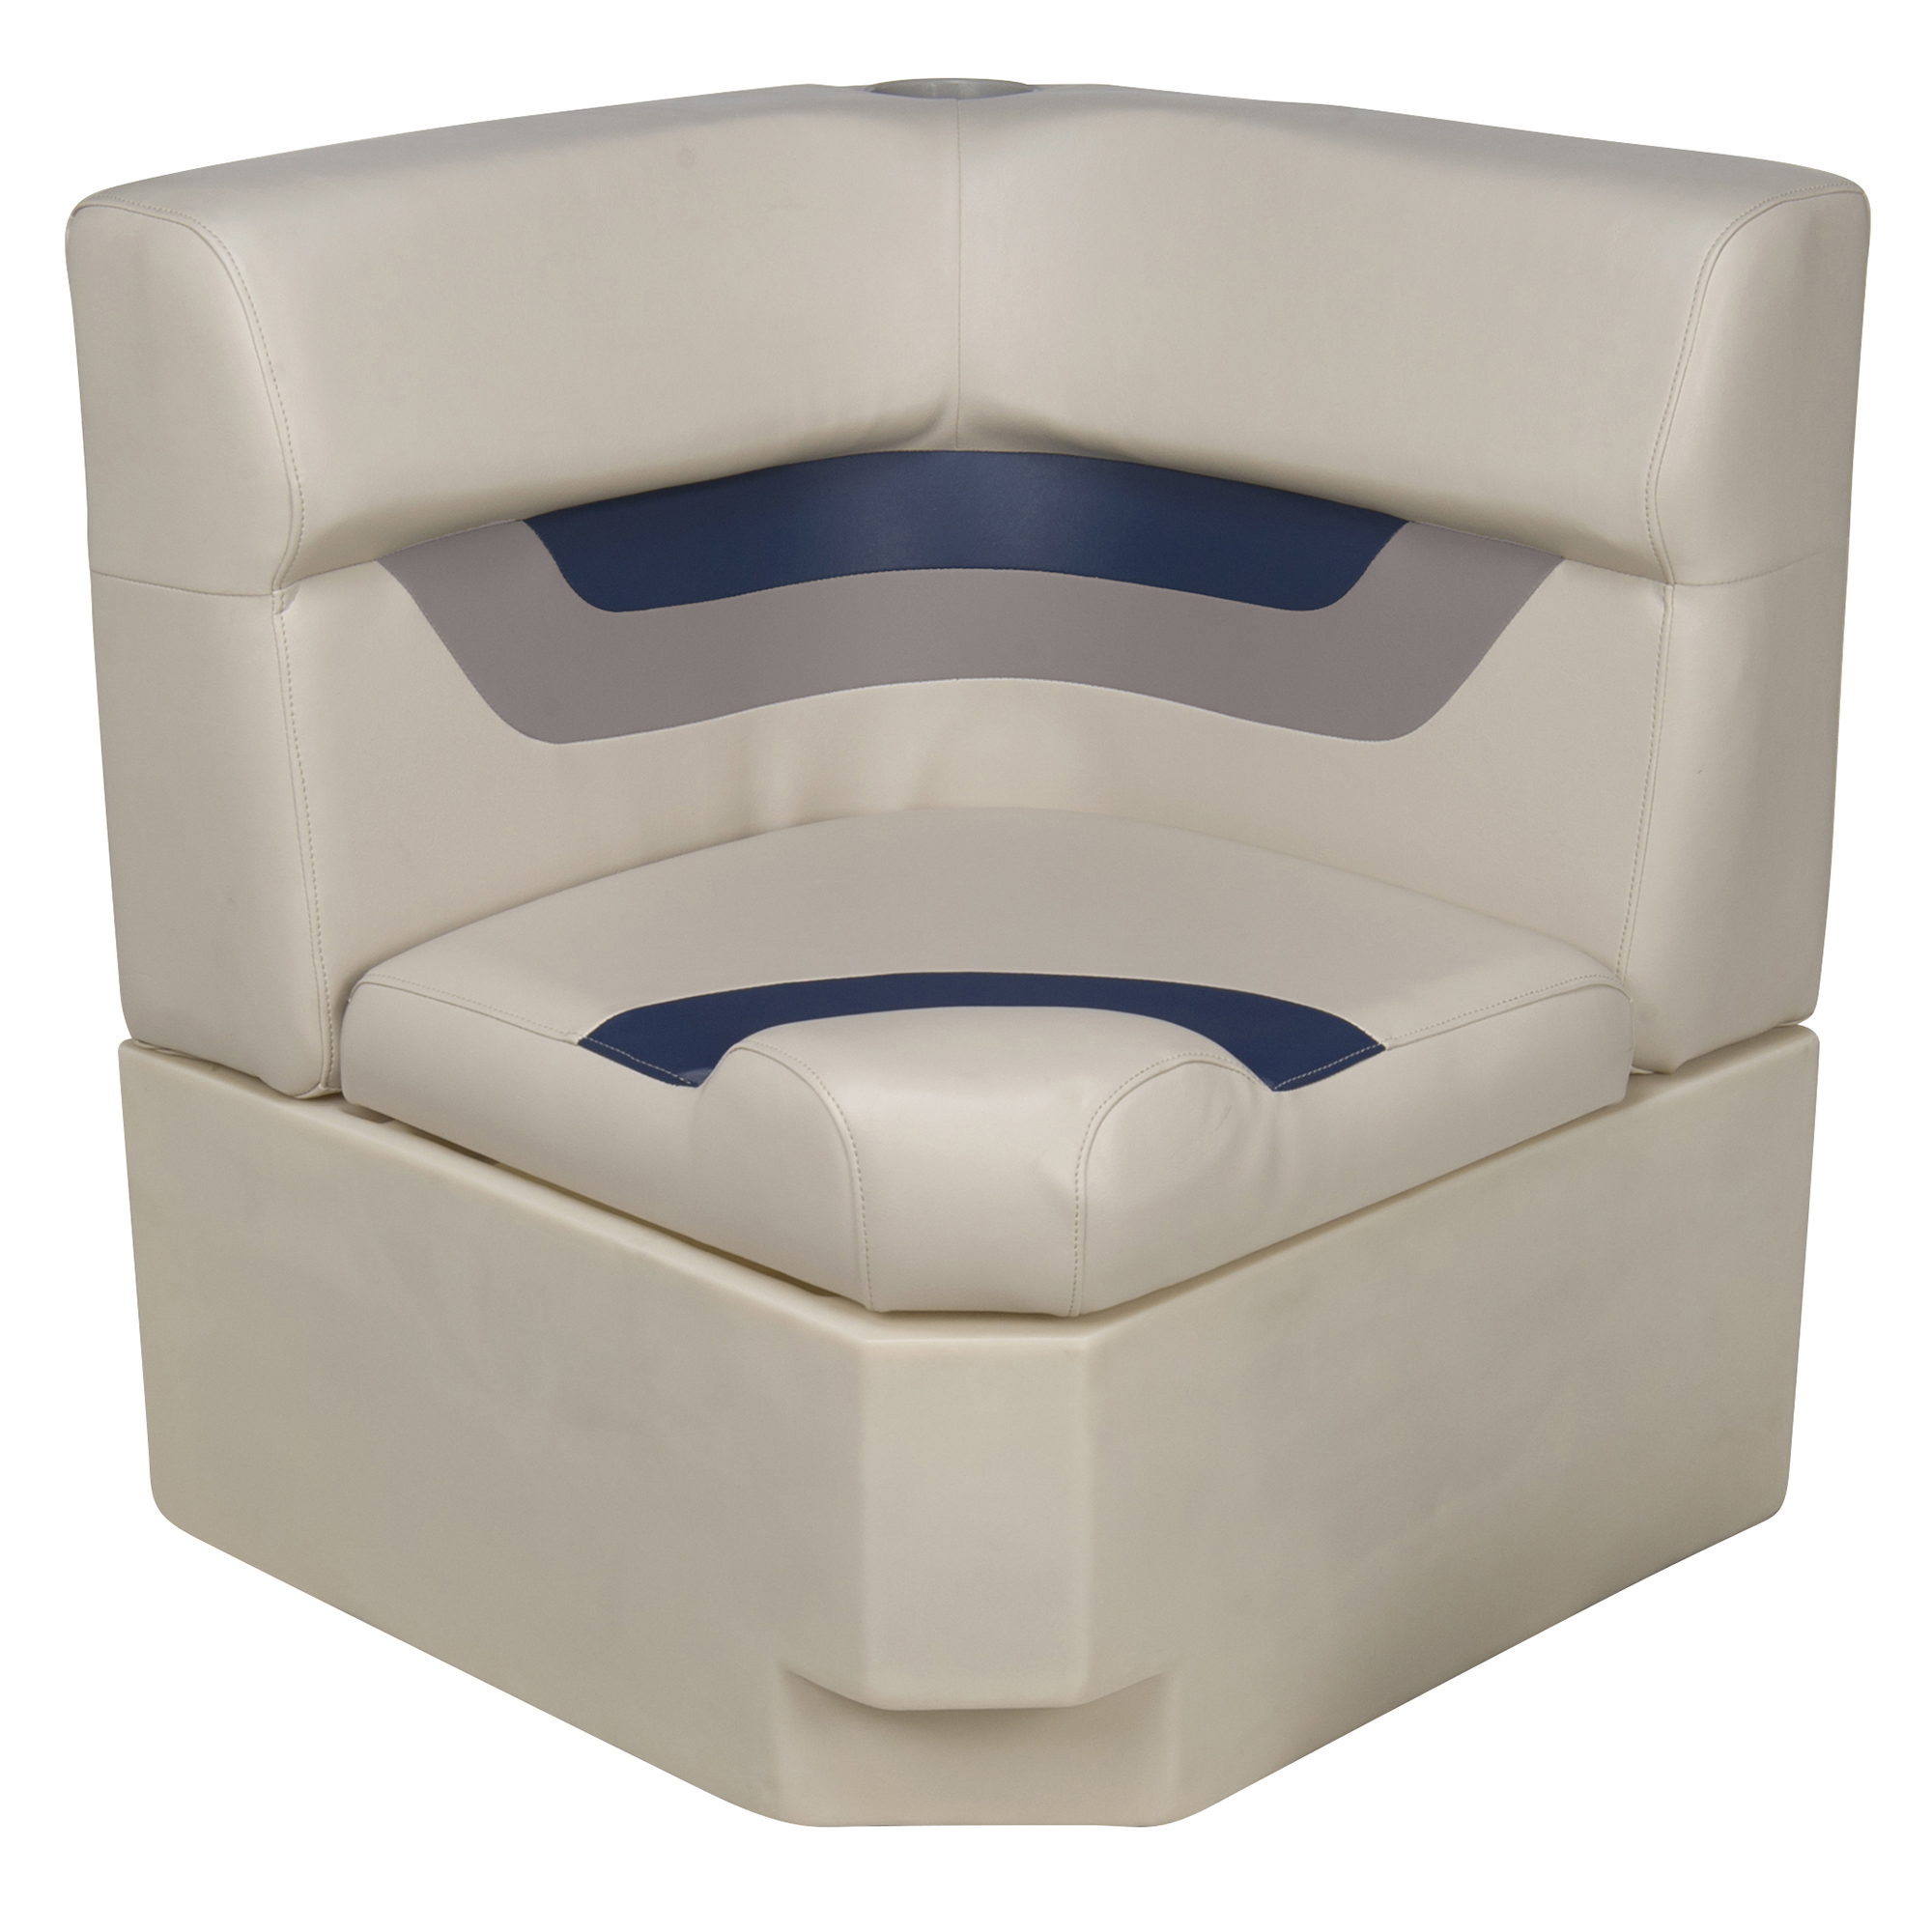 Toonmate Designer Pontoon Corner Section Seat Top